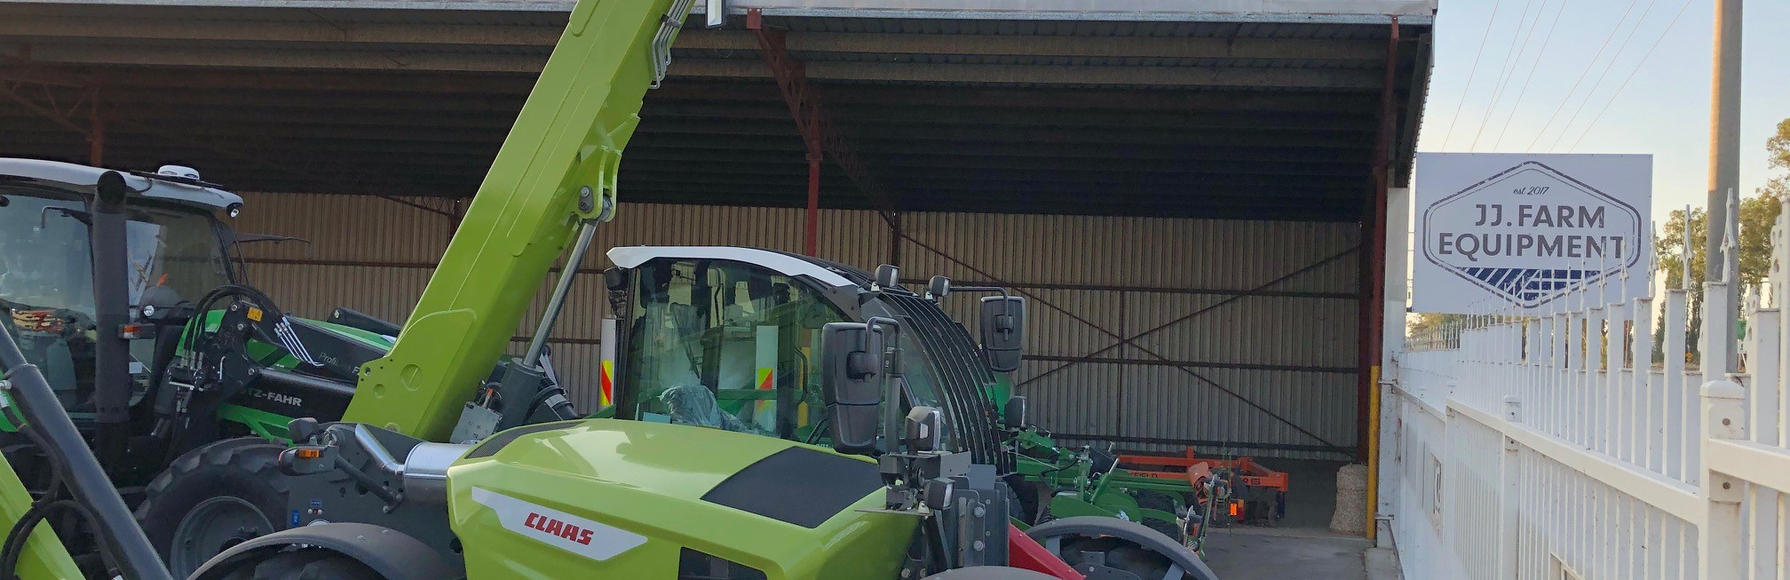 1x ONLY - NEW Claas Scorpion 732